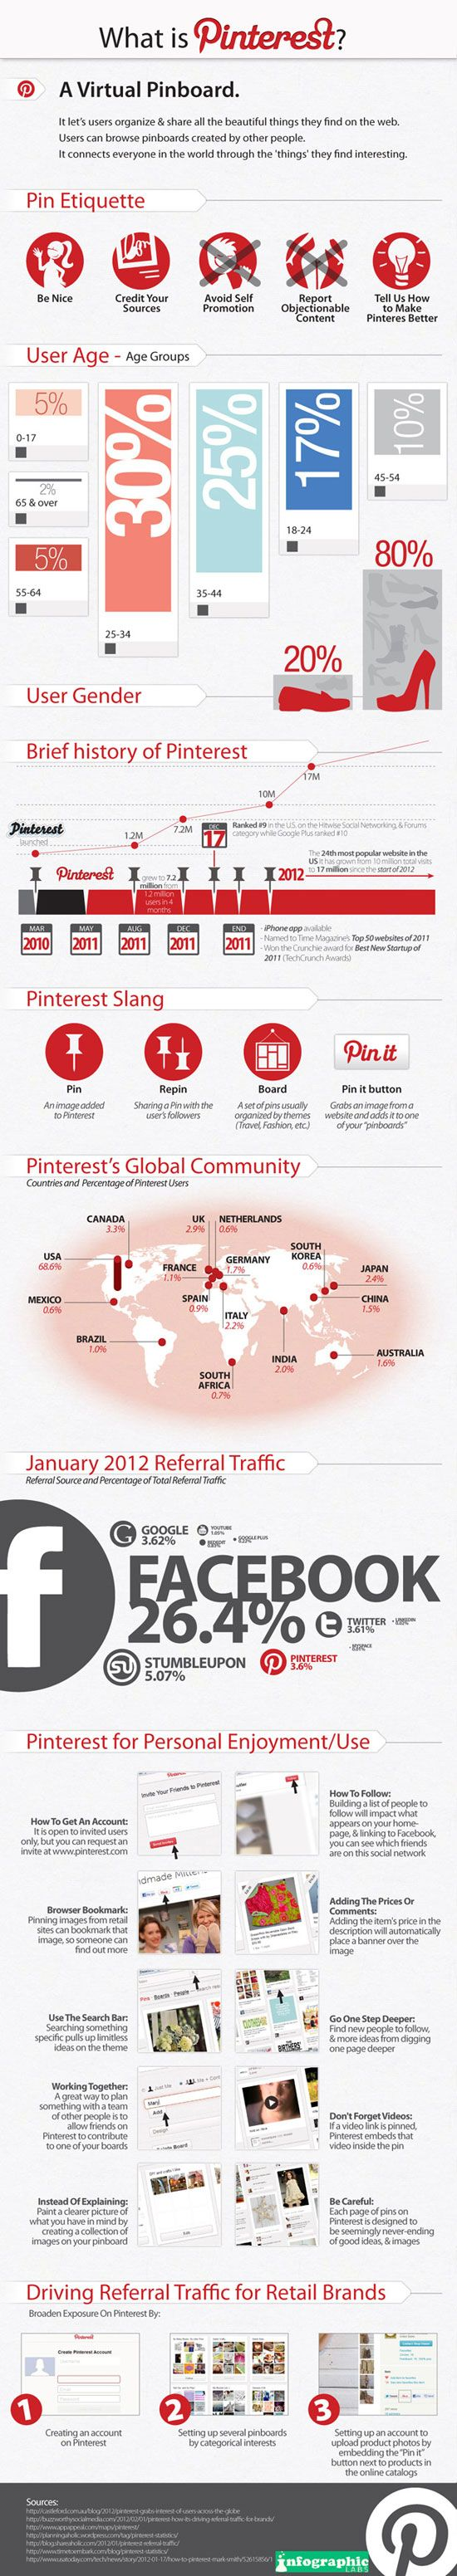 **GREAT INFORMATION AND KNOWING PIN ETIQUETTE** Pinterest on #Pinterest